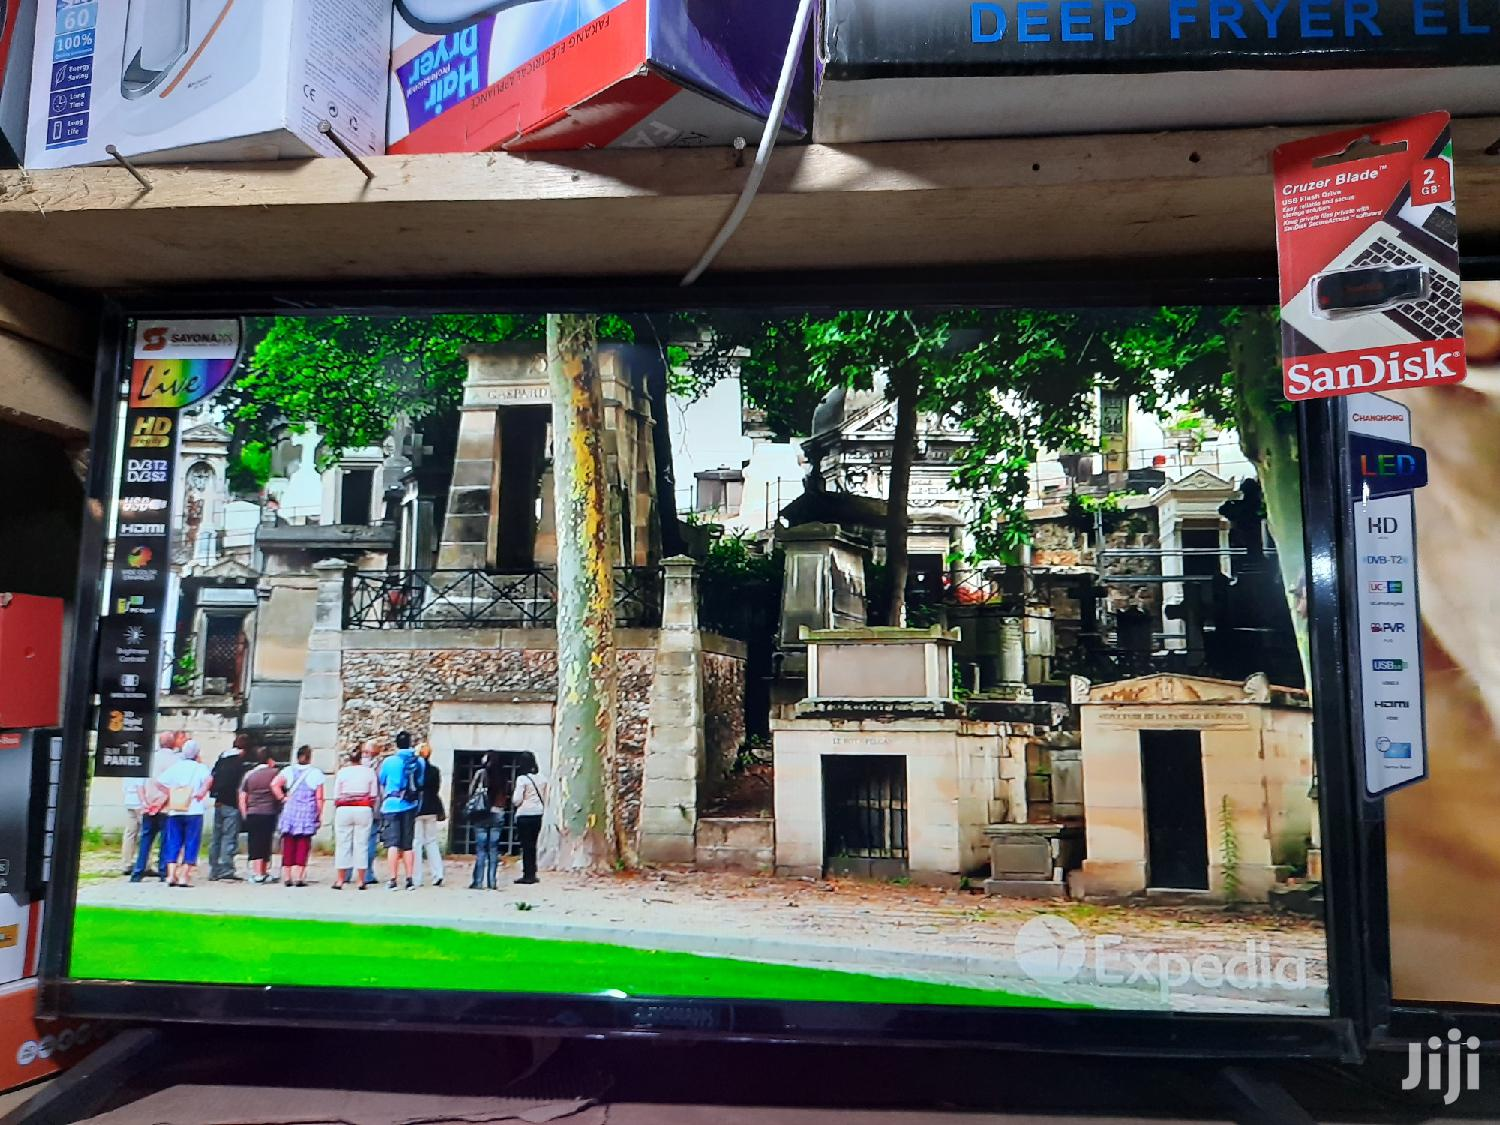 Sayonapps LED Digital Satellite Flat Screen TV 32 Inches